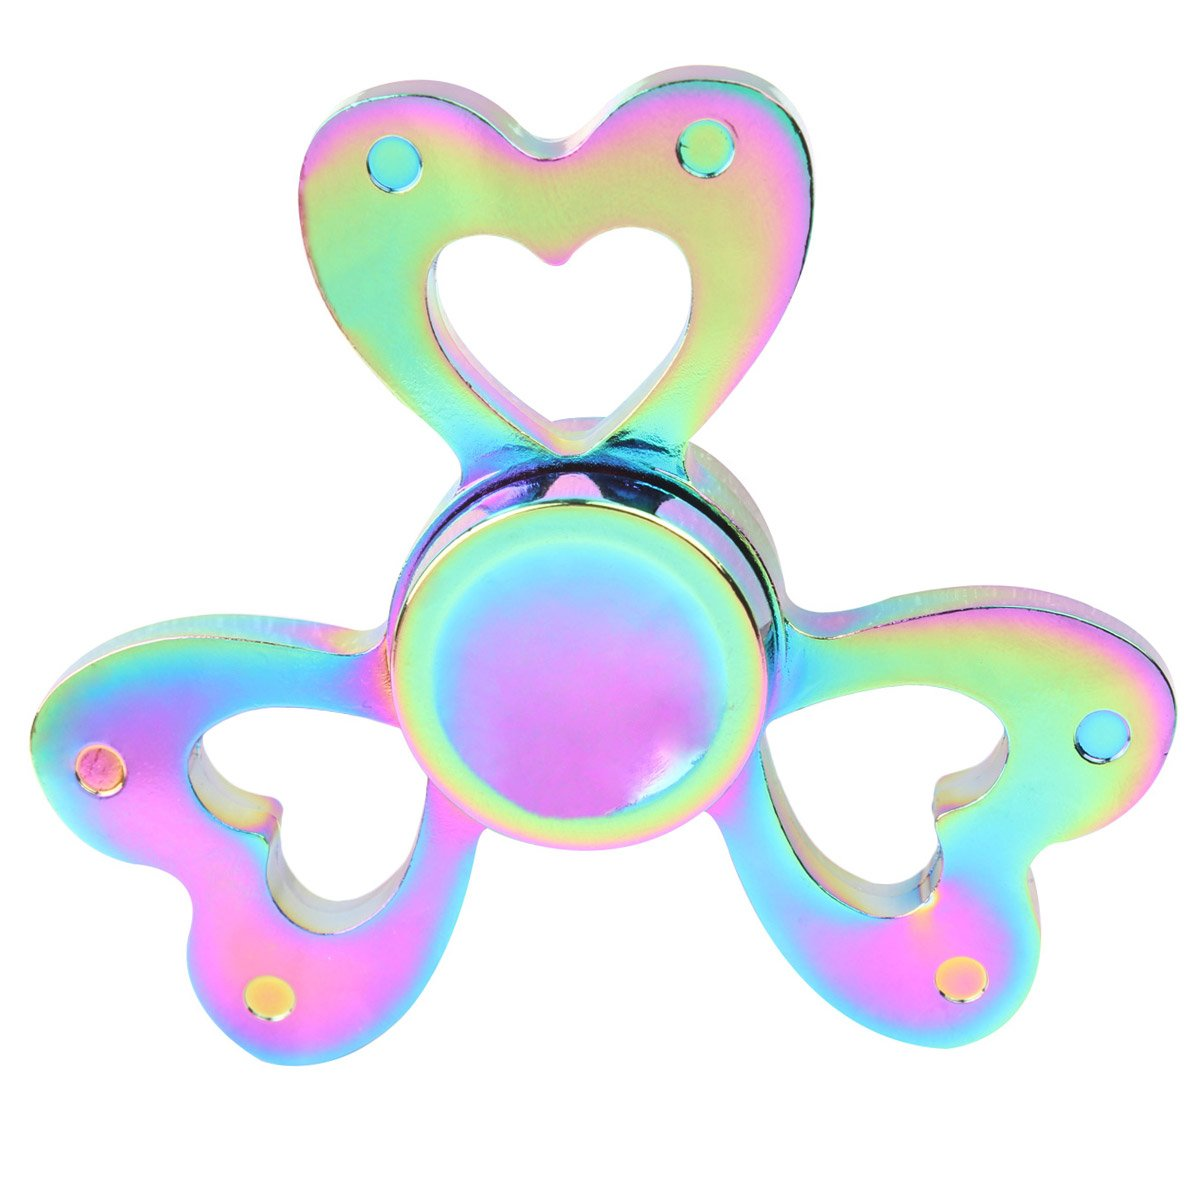 Fidget Spinner Rainbow Hand Spinning Toy EDC Focus Stress Reducer Toy Perfect for Girls Gift (Rainbow Heart) Generic DGT509